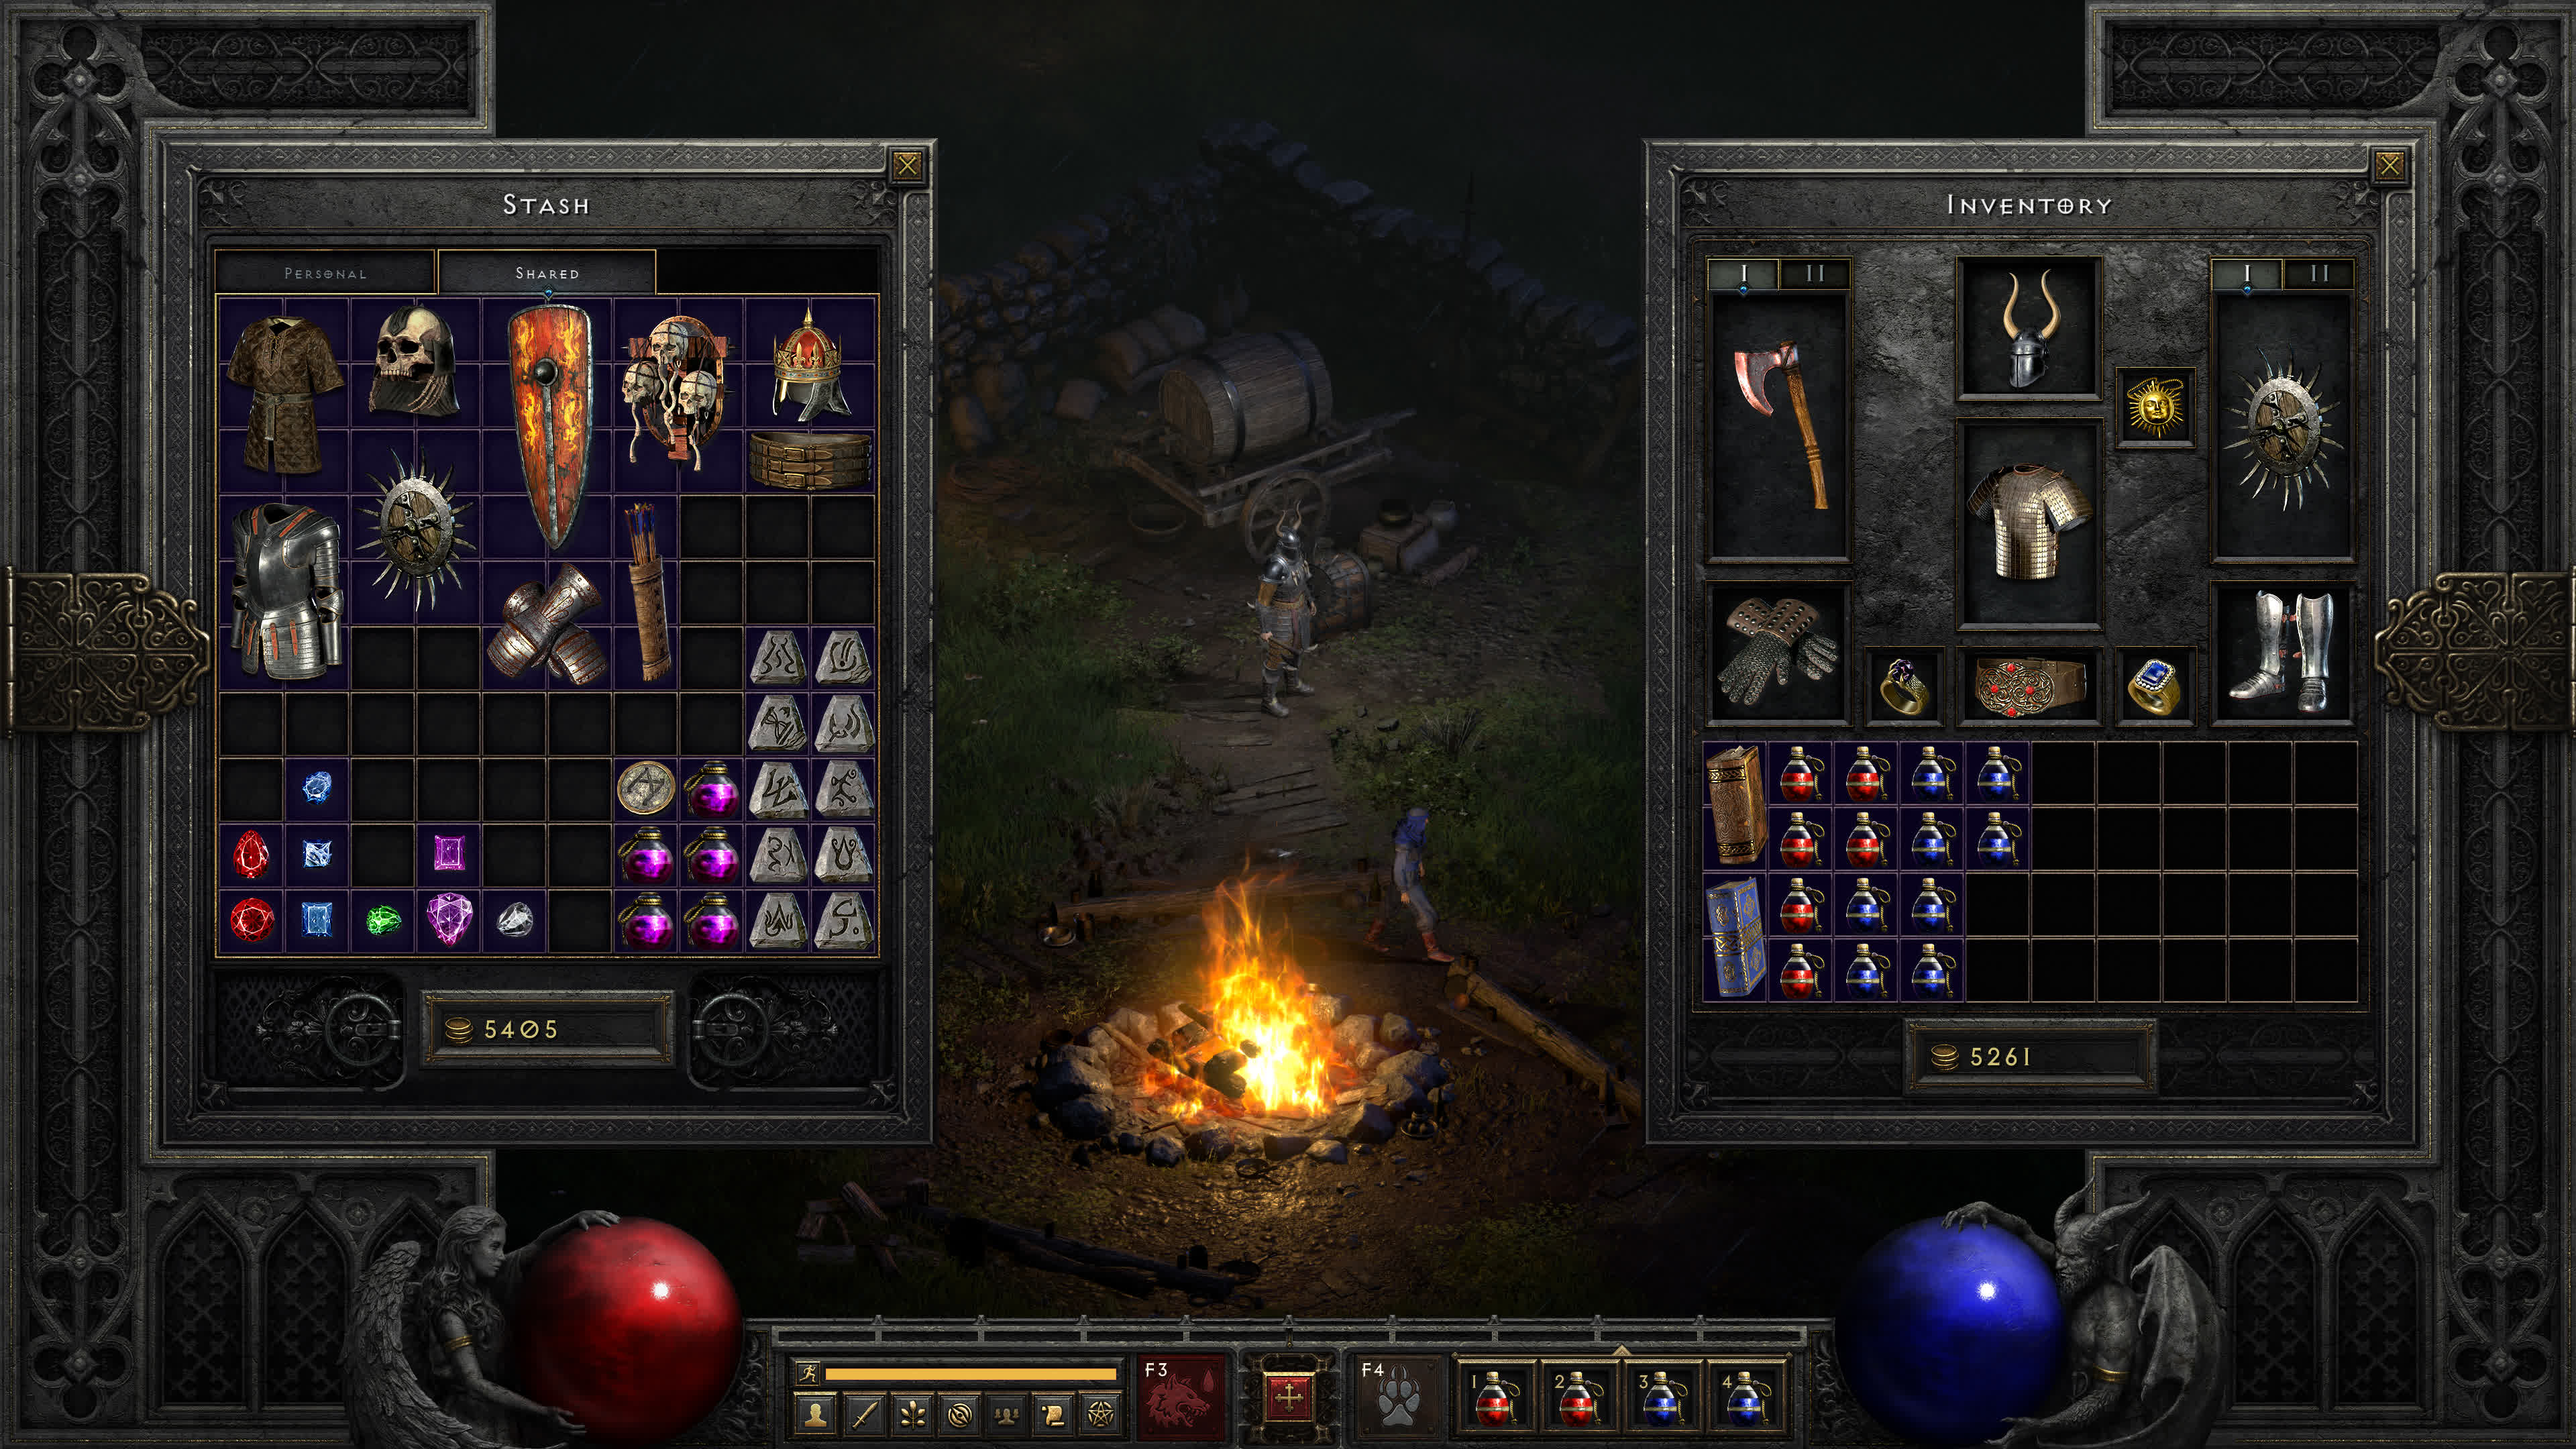 diablo ii resurrected will be a faithful remaster of the